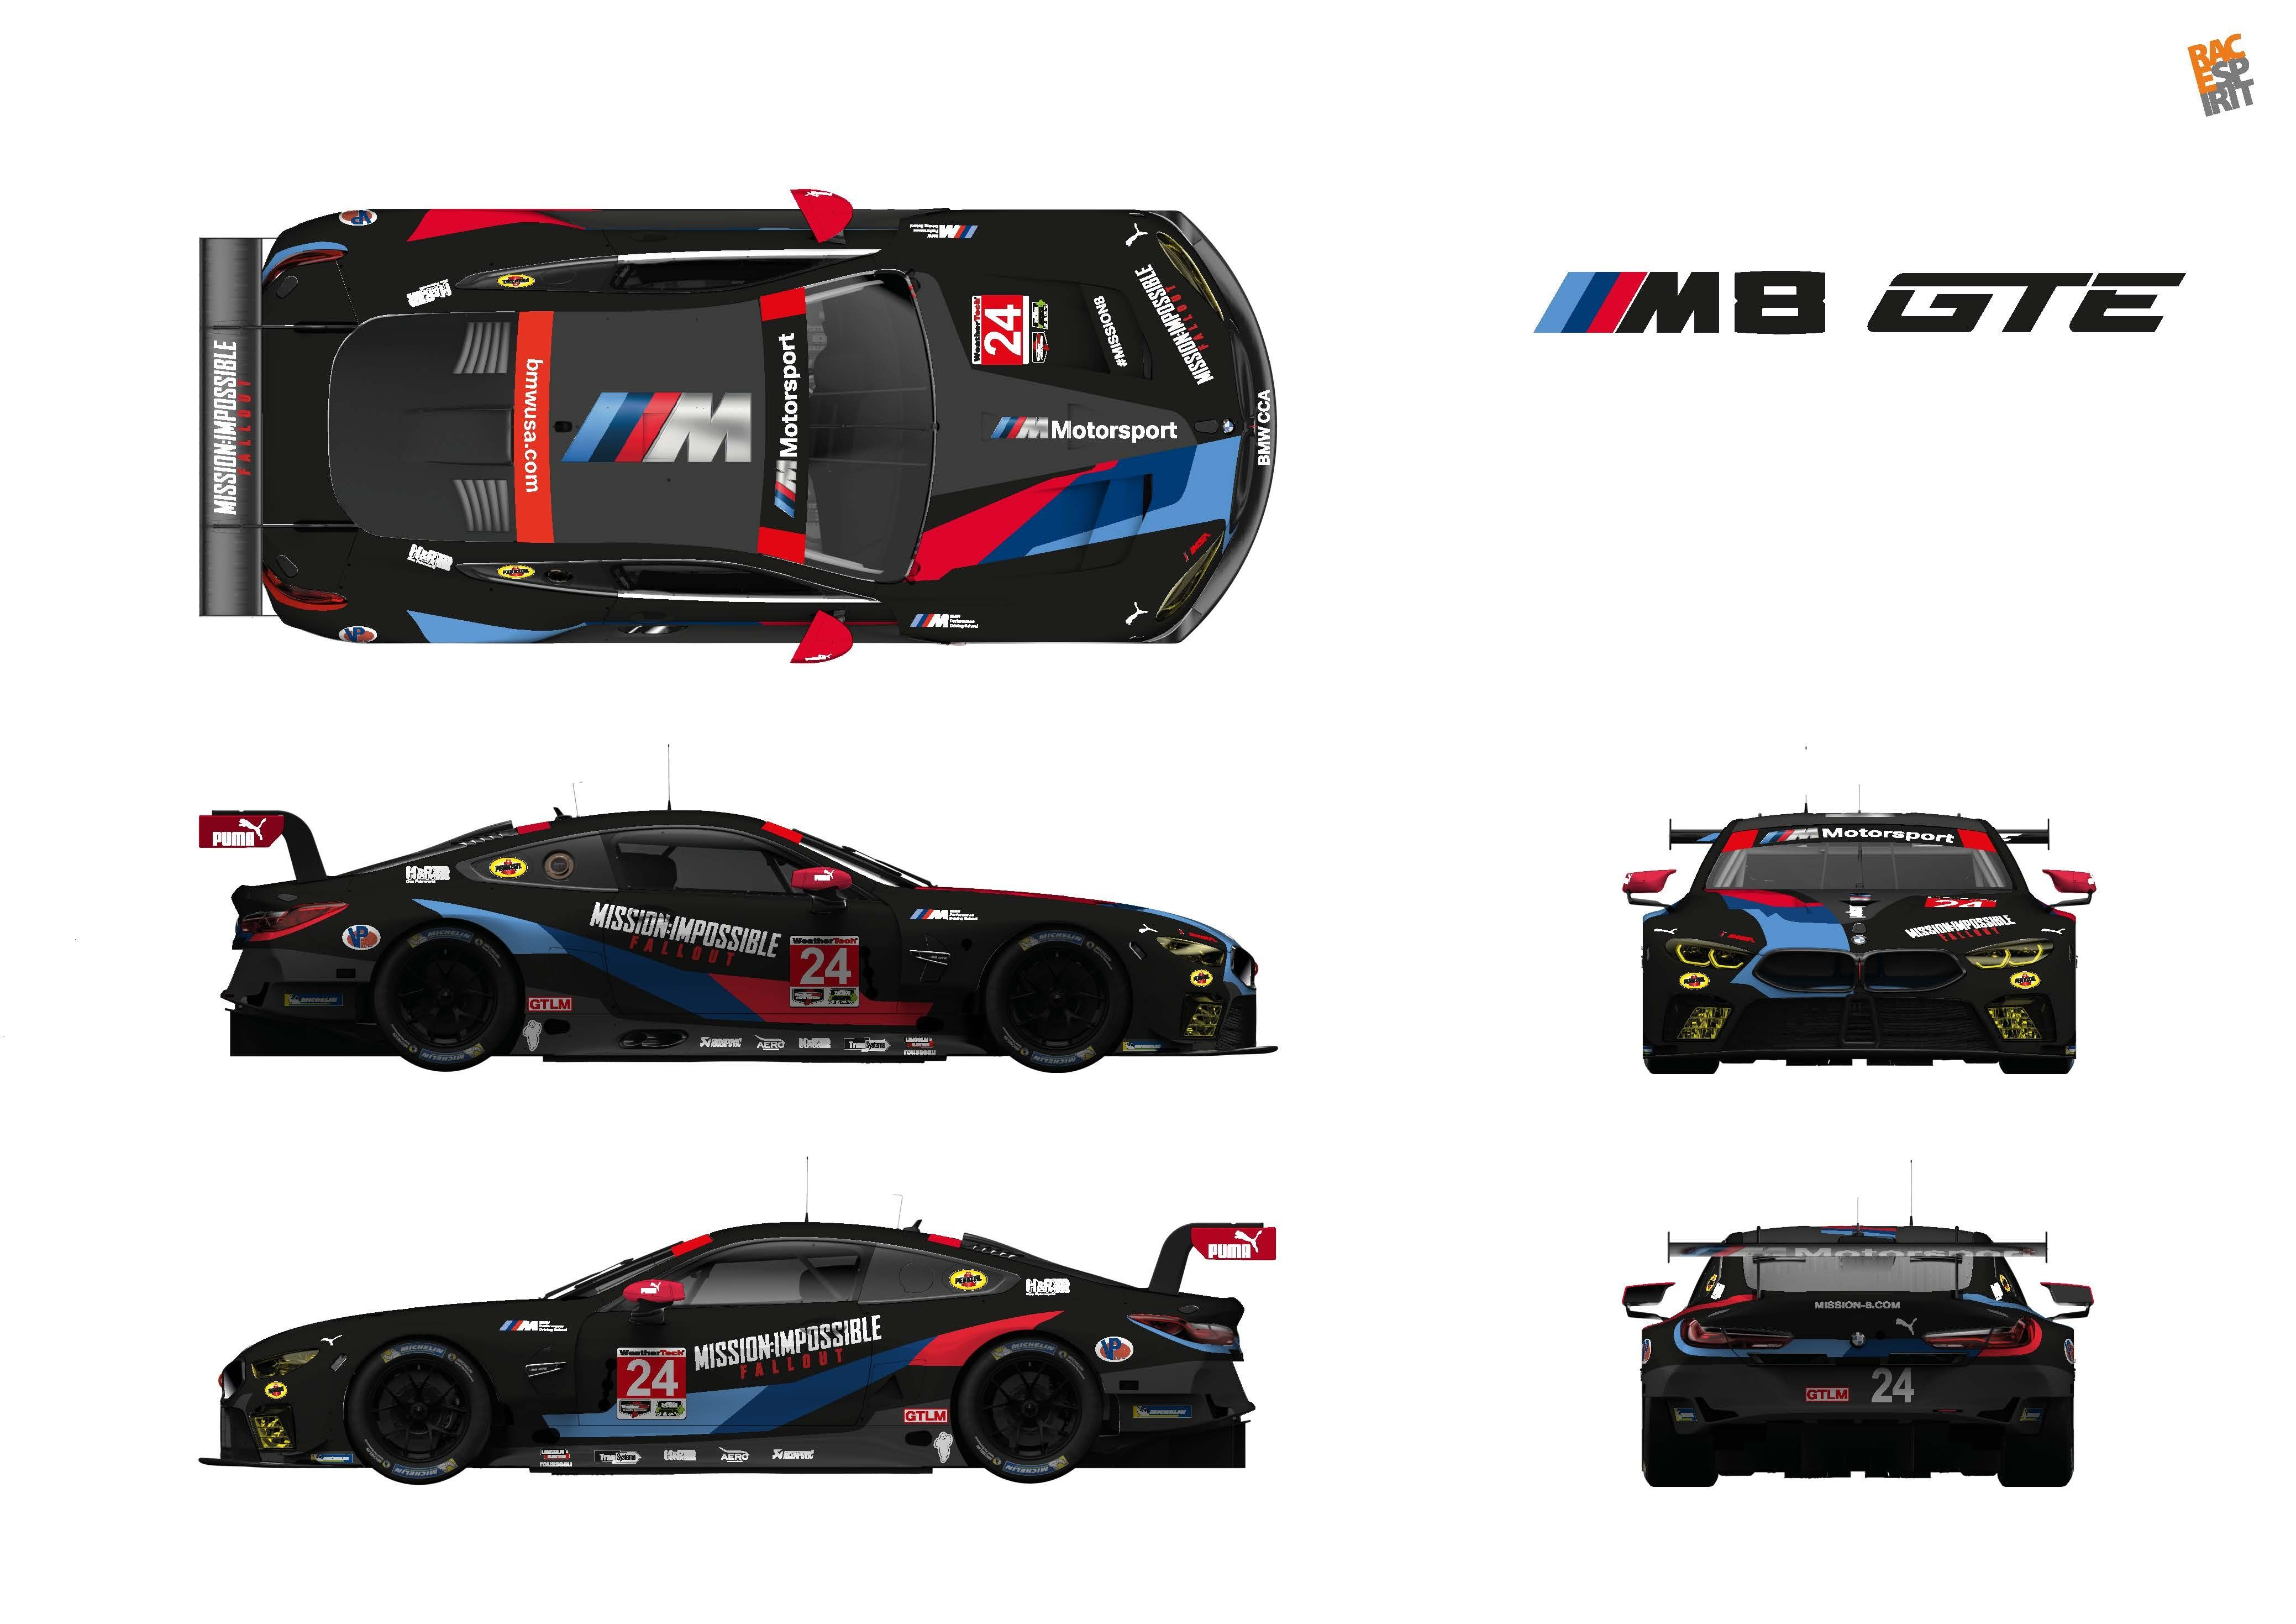 Bmw M8 Gte Cars Racing At Lime Rock To Wear Mission Impossible